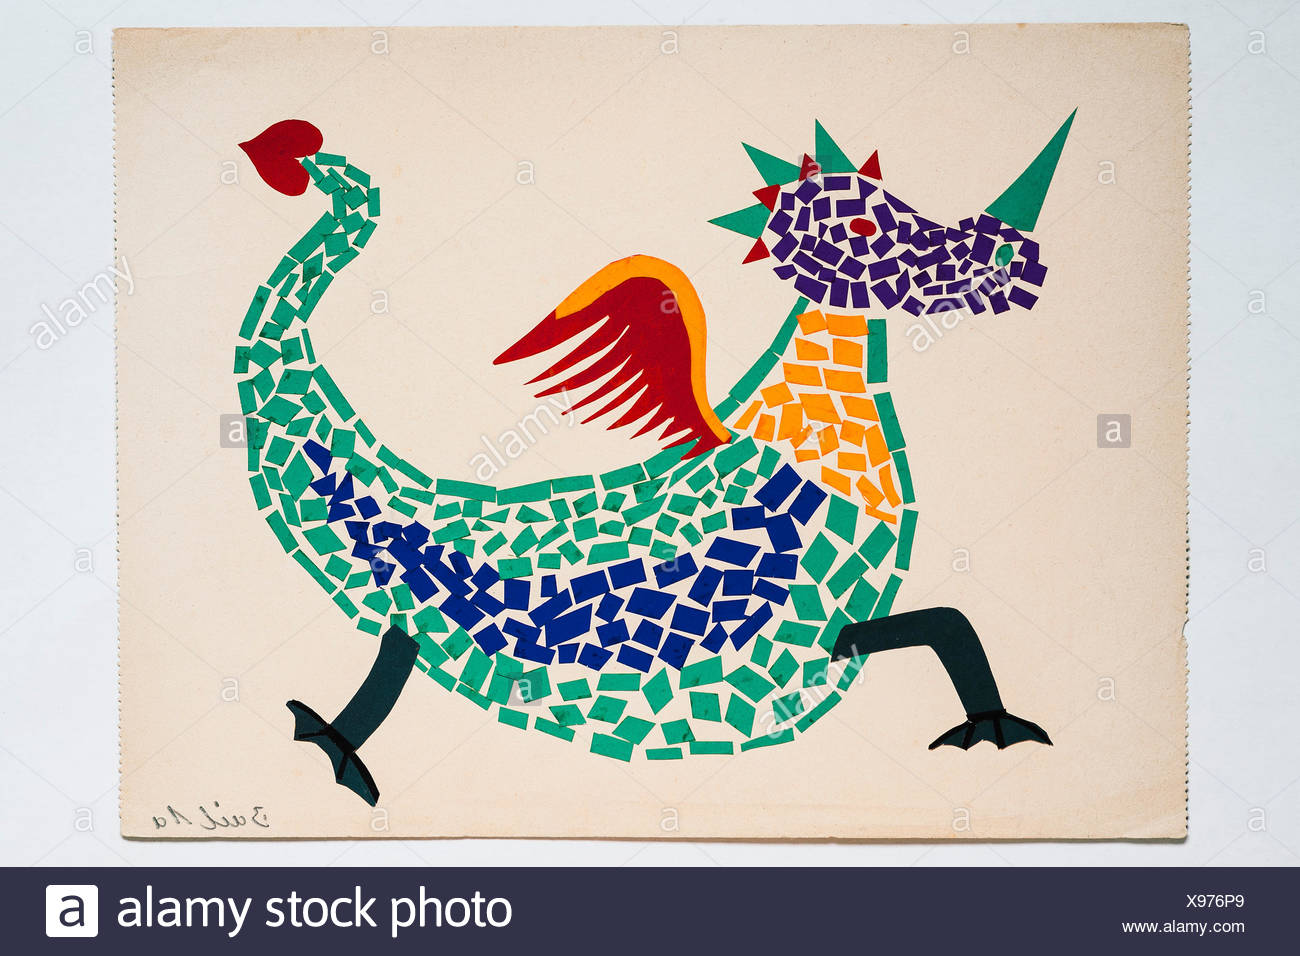 Dragon, Drawing, Adhesive work, Children's drawing, 12 years, Germany - Stock Image